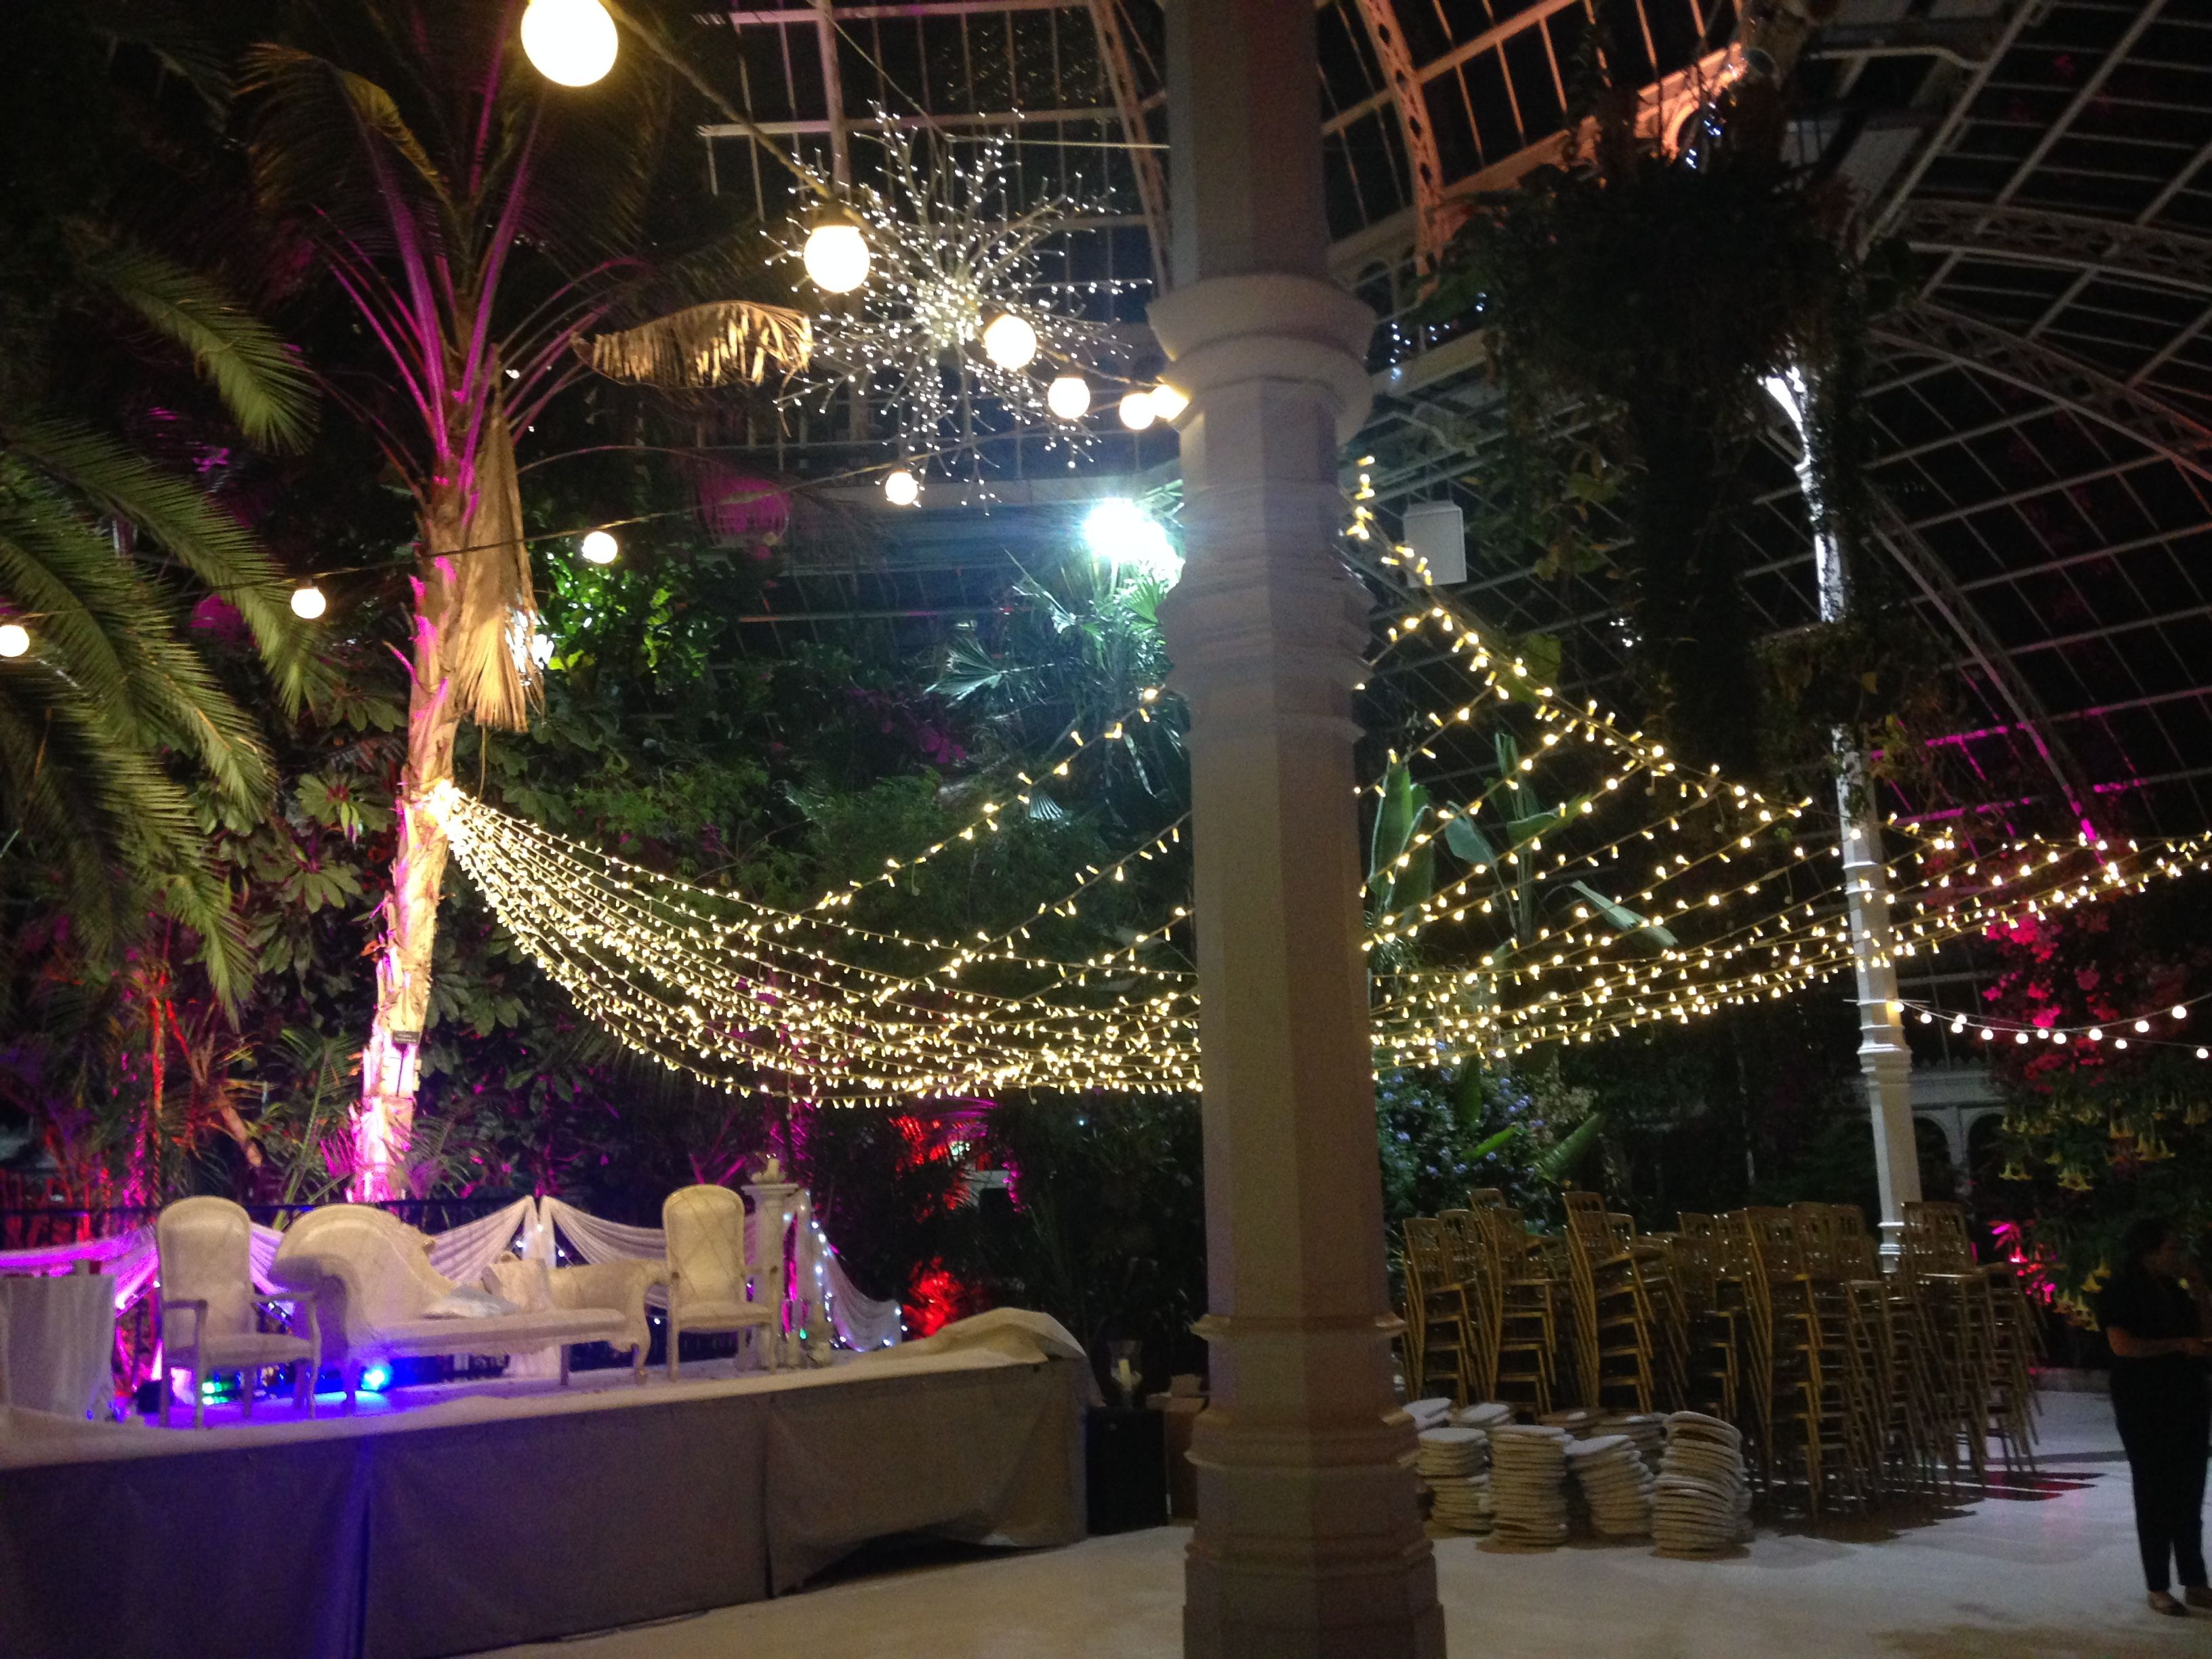 Warm White Fairy Light Canopy For Indian Wedding At Sefton Park Palm House Liverpool